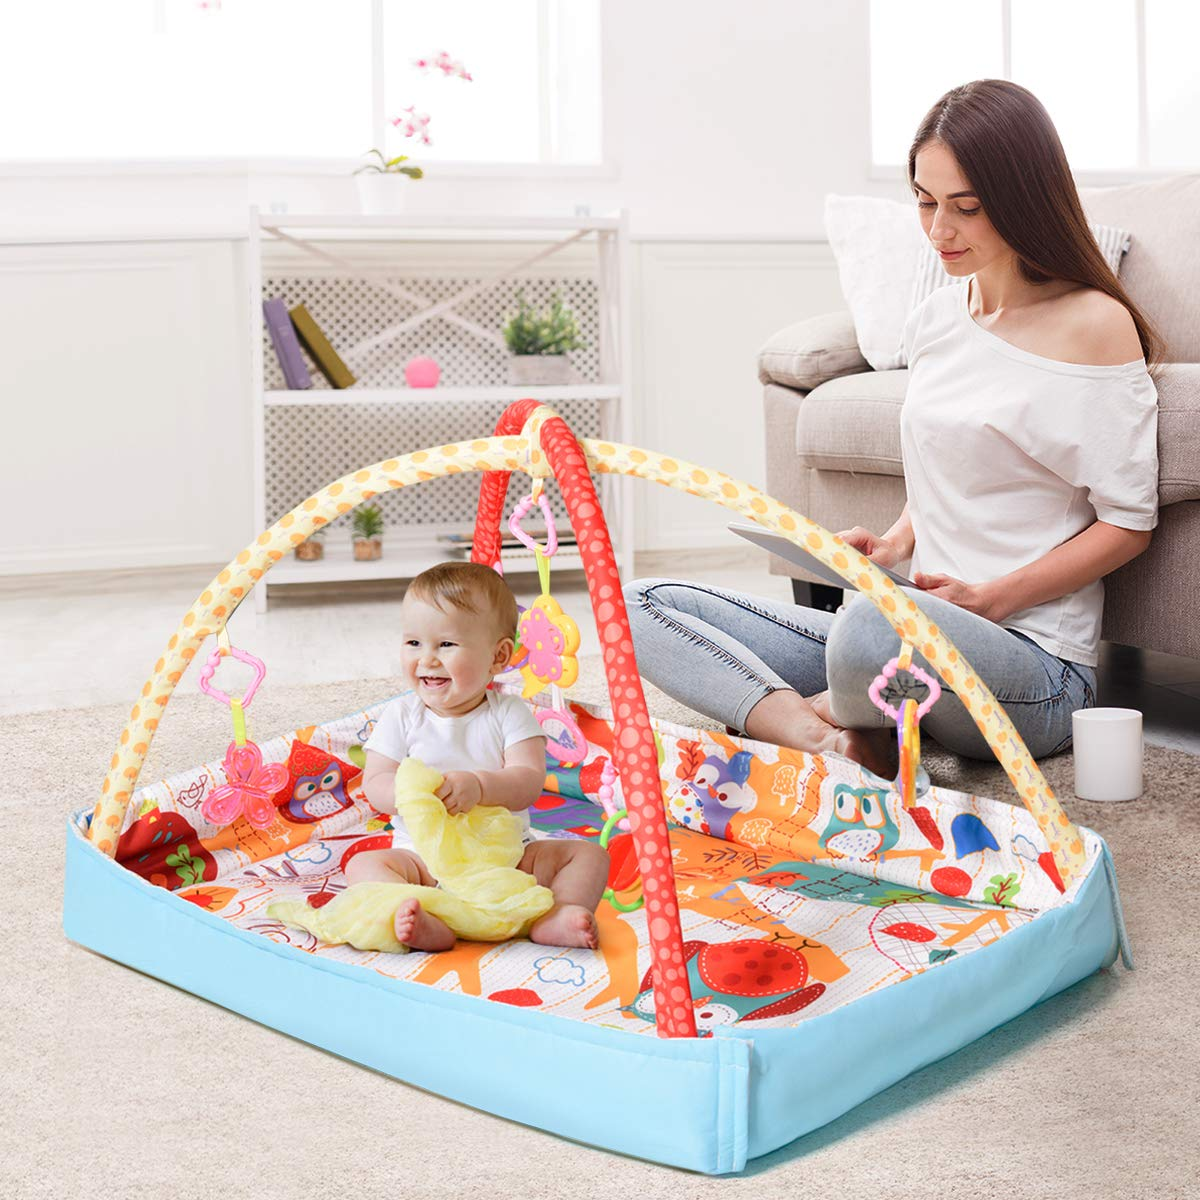 COSTWAY 3 in 1 Baby Play Music Mat - Infant | Toddlers | Newborn Carpet for Fitness, Play, Activity with Cartoon Owl Pattern, 5 Hanging Toys, 2 Removable Arches 110X70X50CM